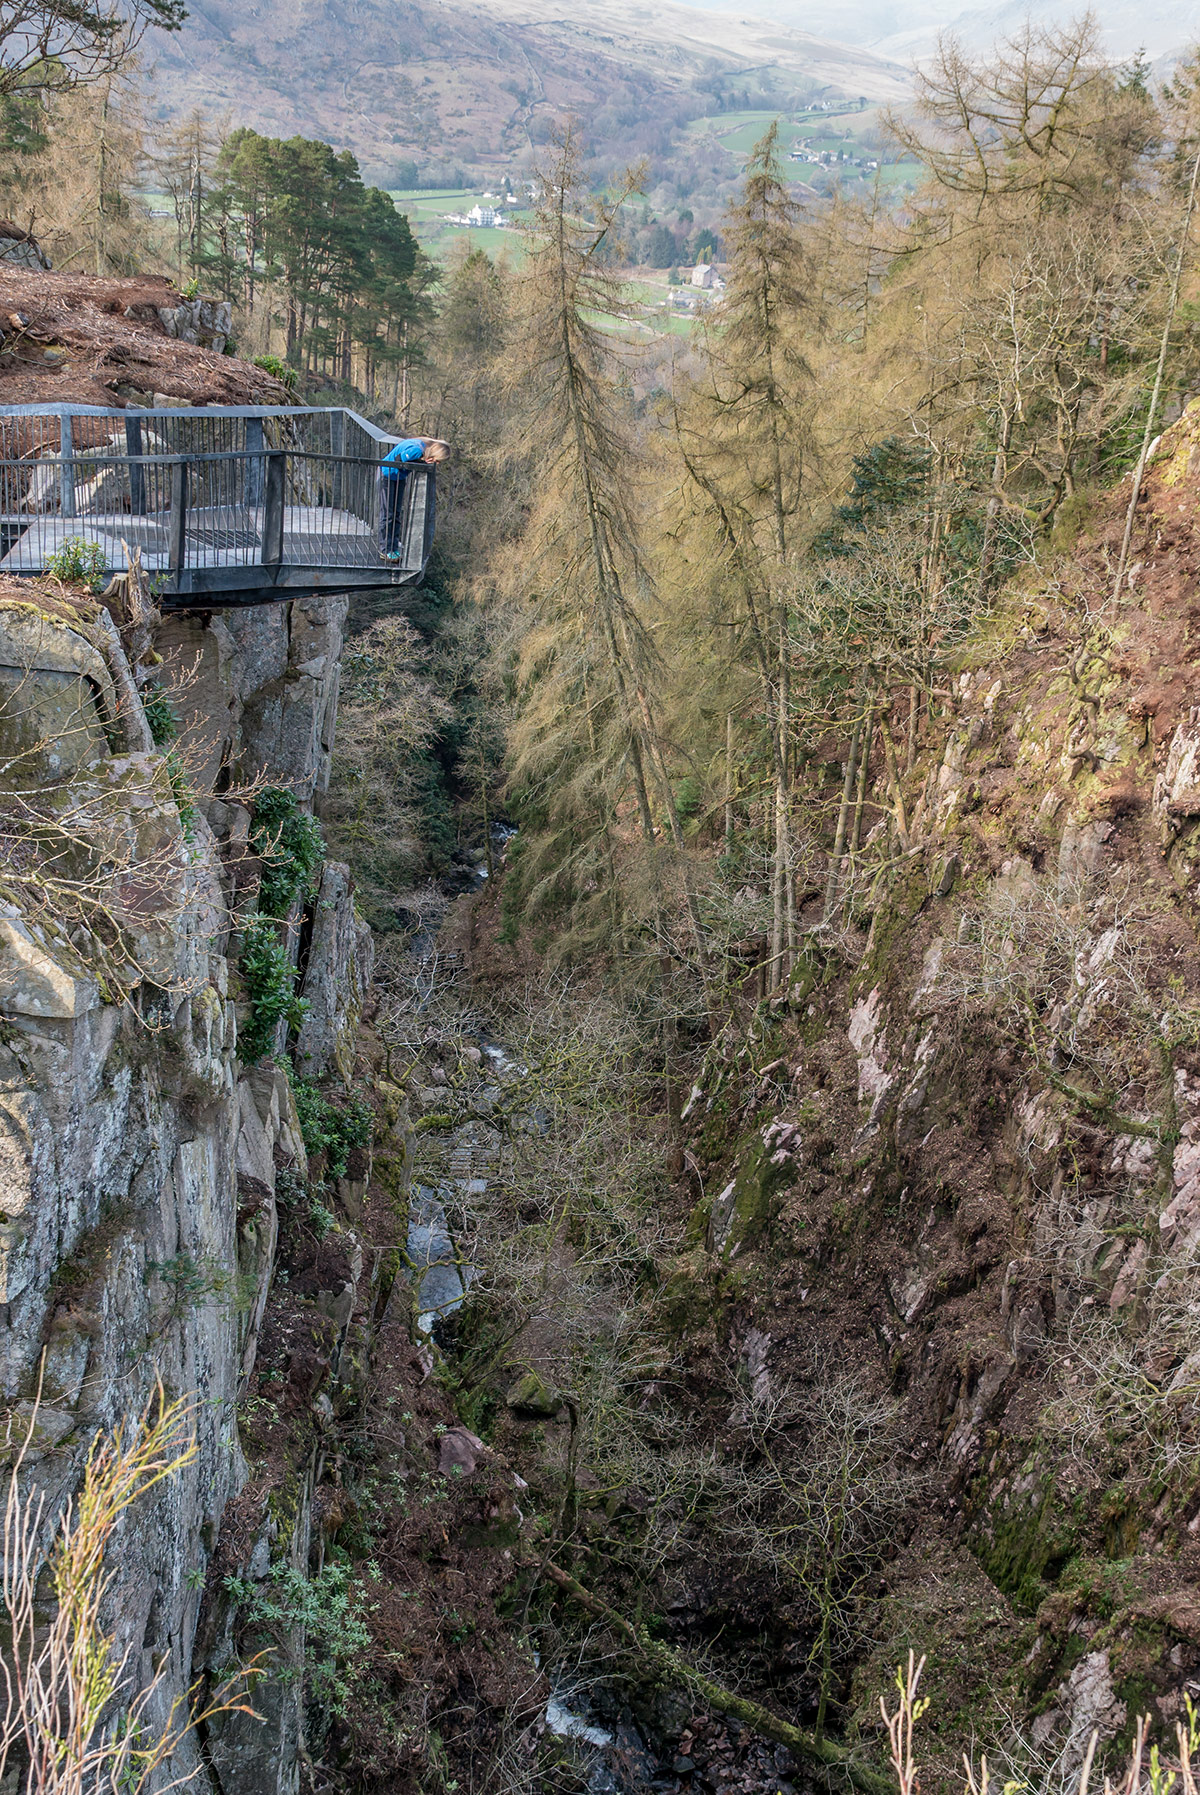 Someone standing on a metalwork platform that juts out over a steep sided ghyll.